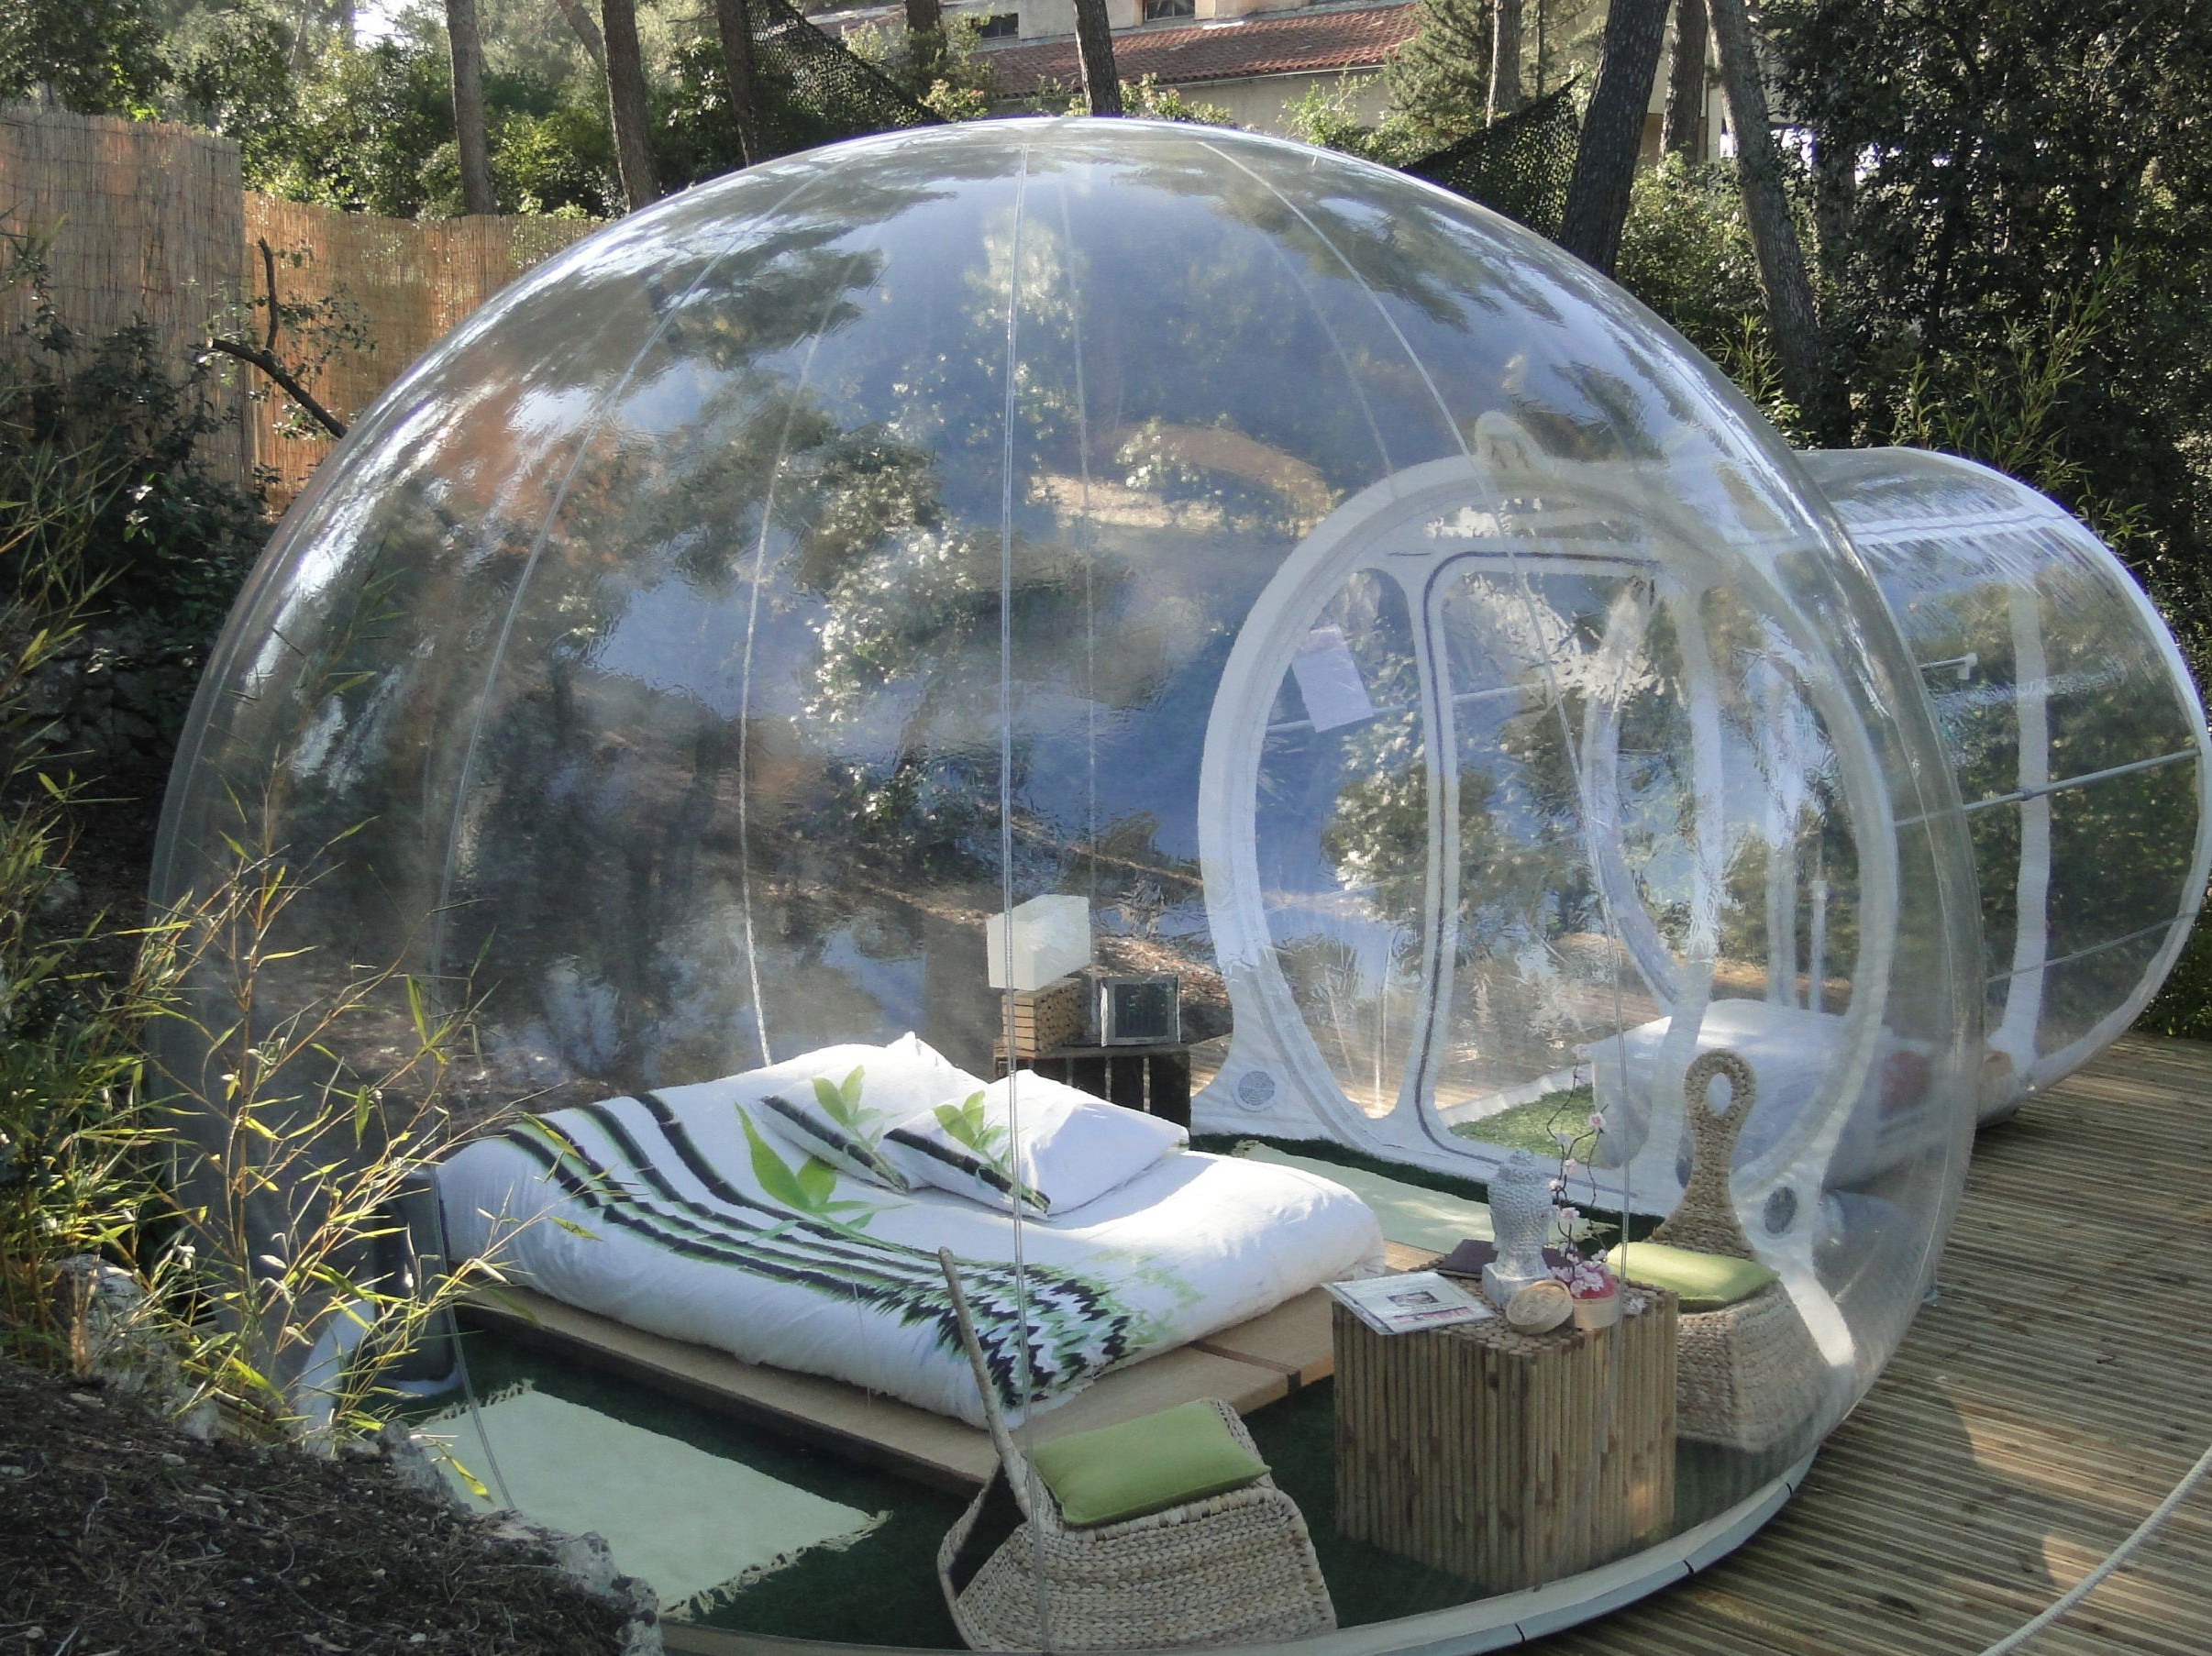 & You Can Sleep In A Bubble In This French Hotel